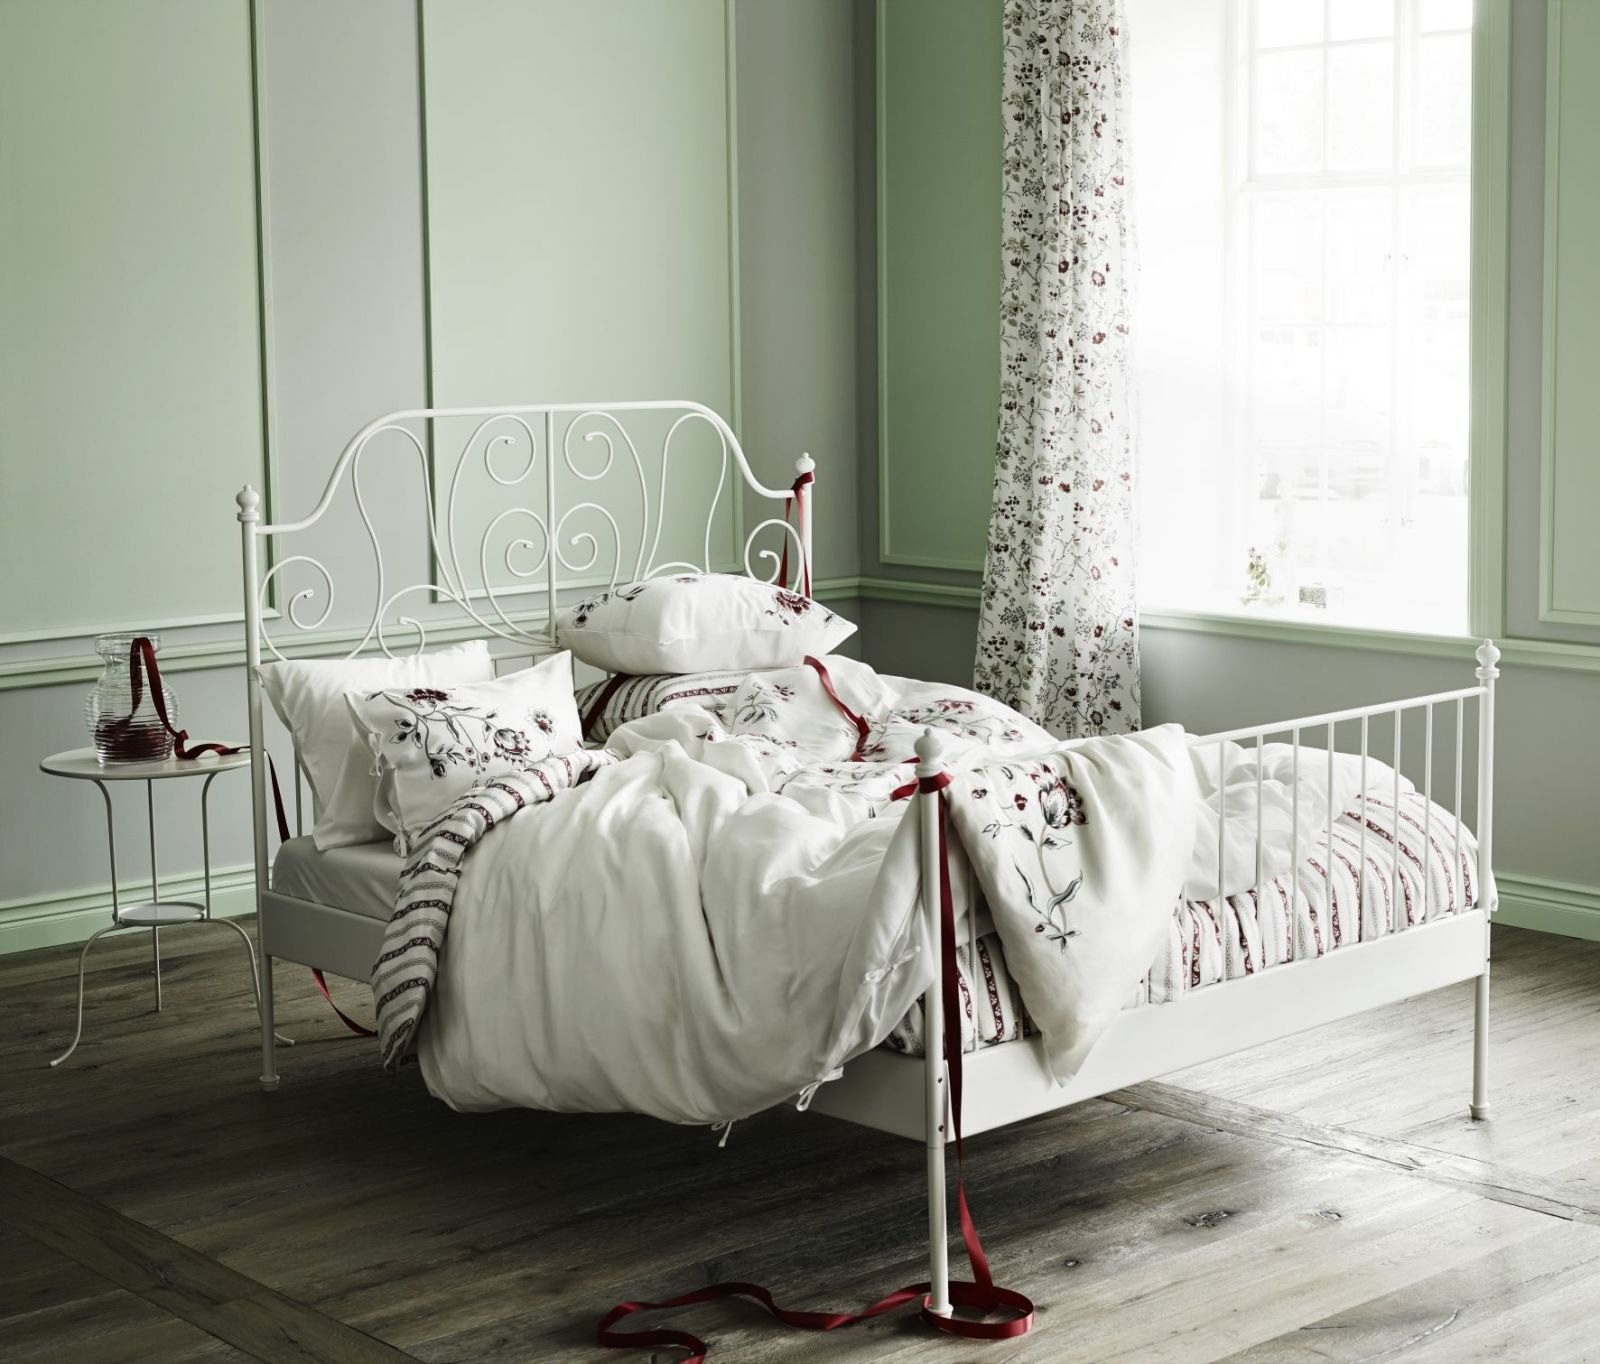 Pinterest-worthy bedrooms: inspiration for your perfect sanctuary